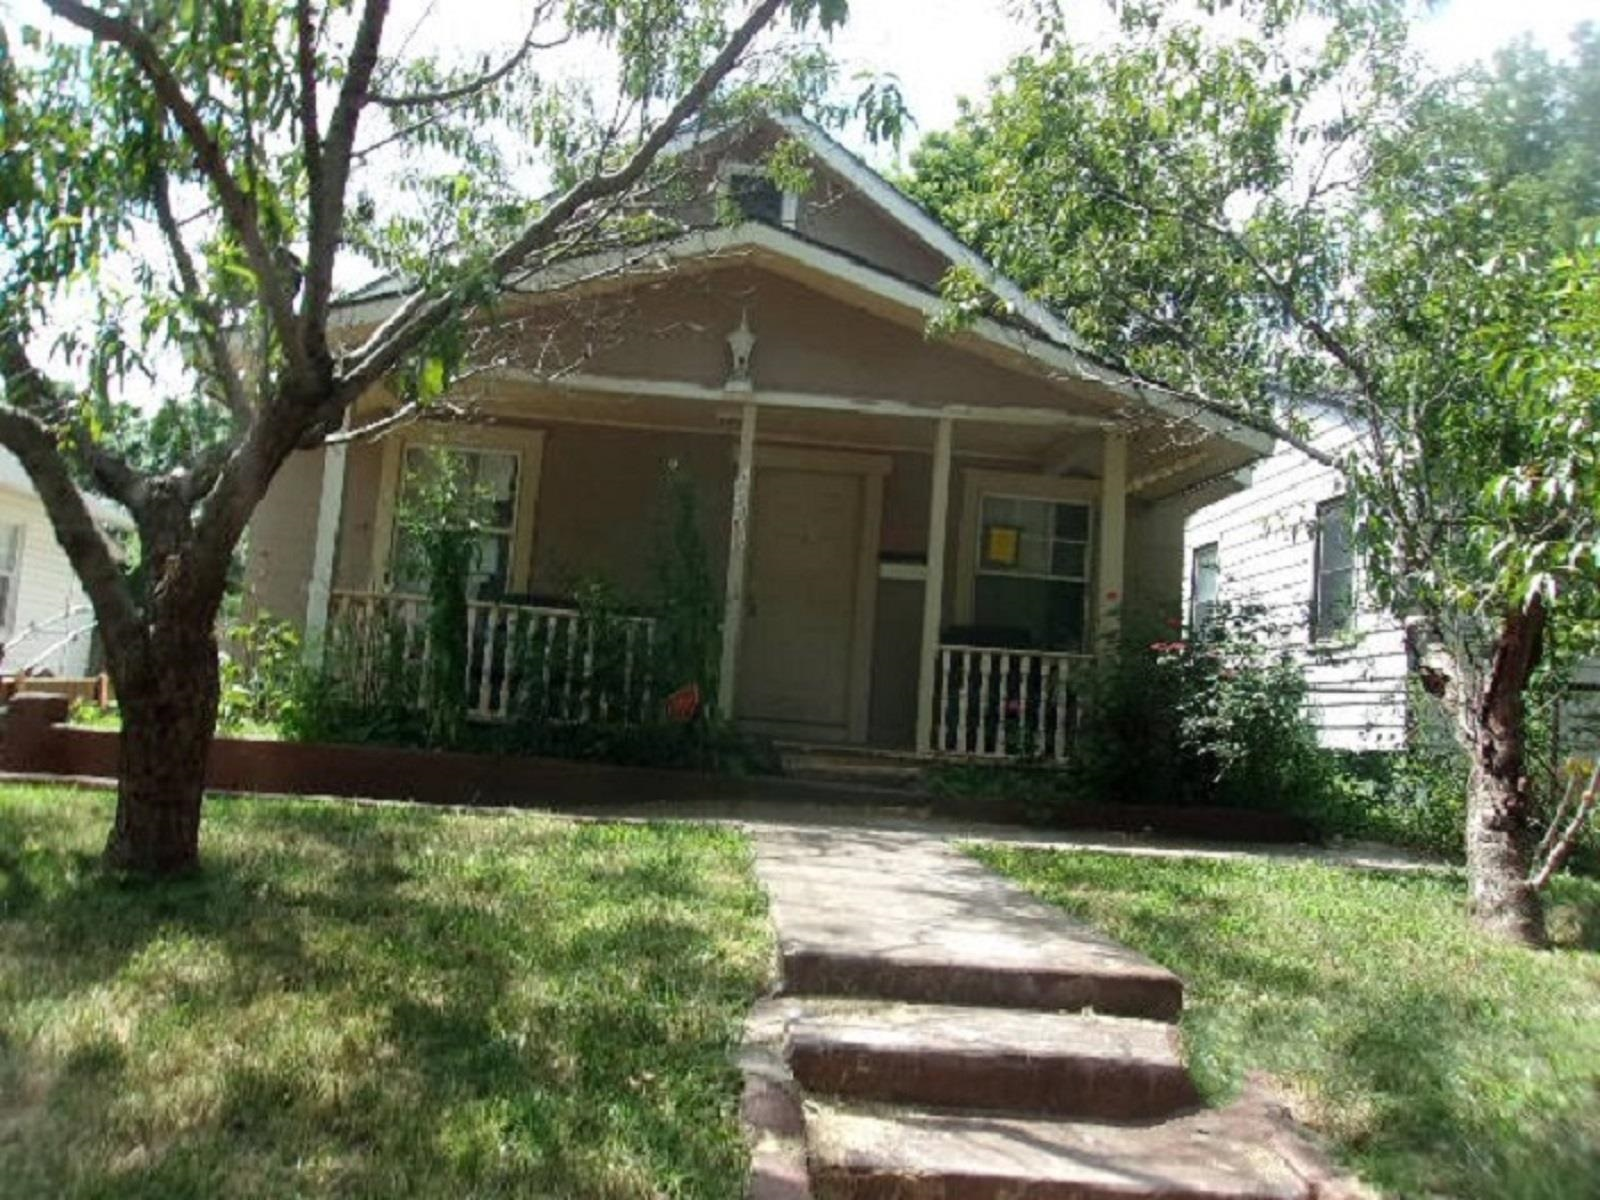 10309 E 9th St, Independence, MO, 64053